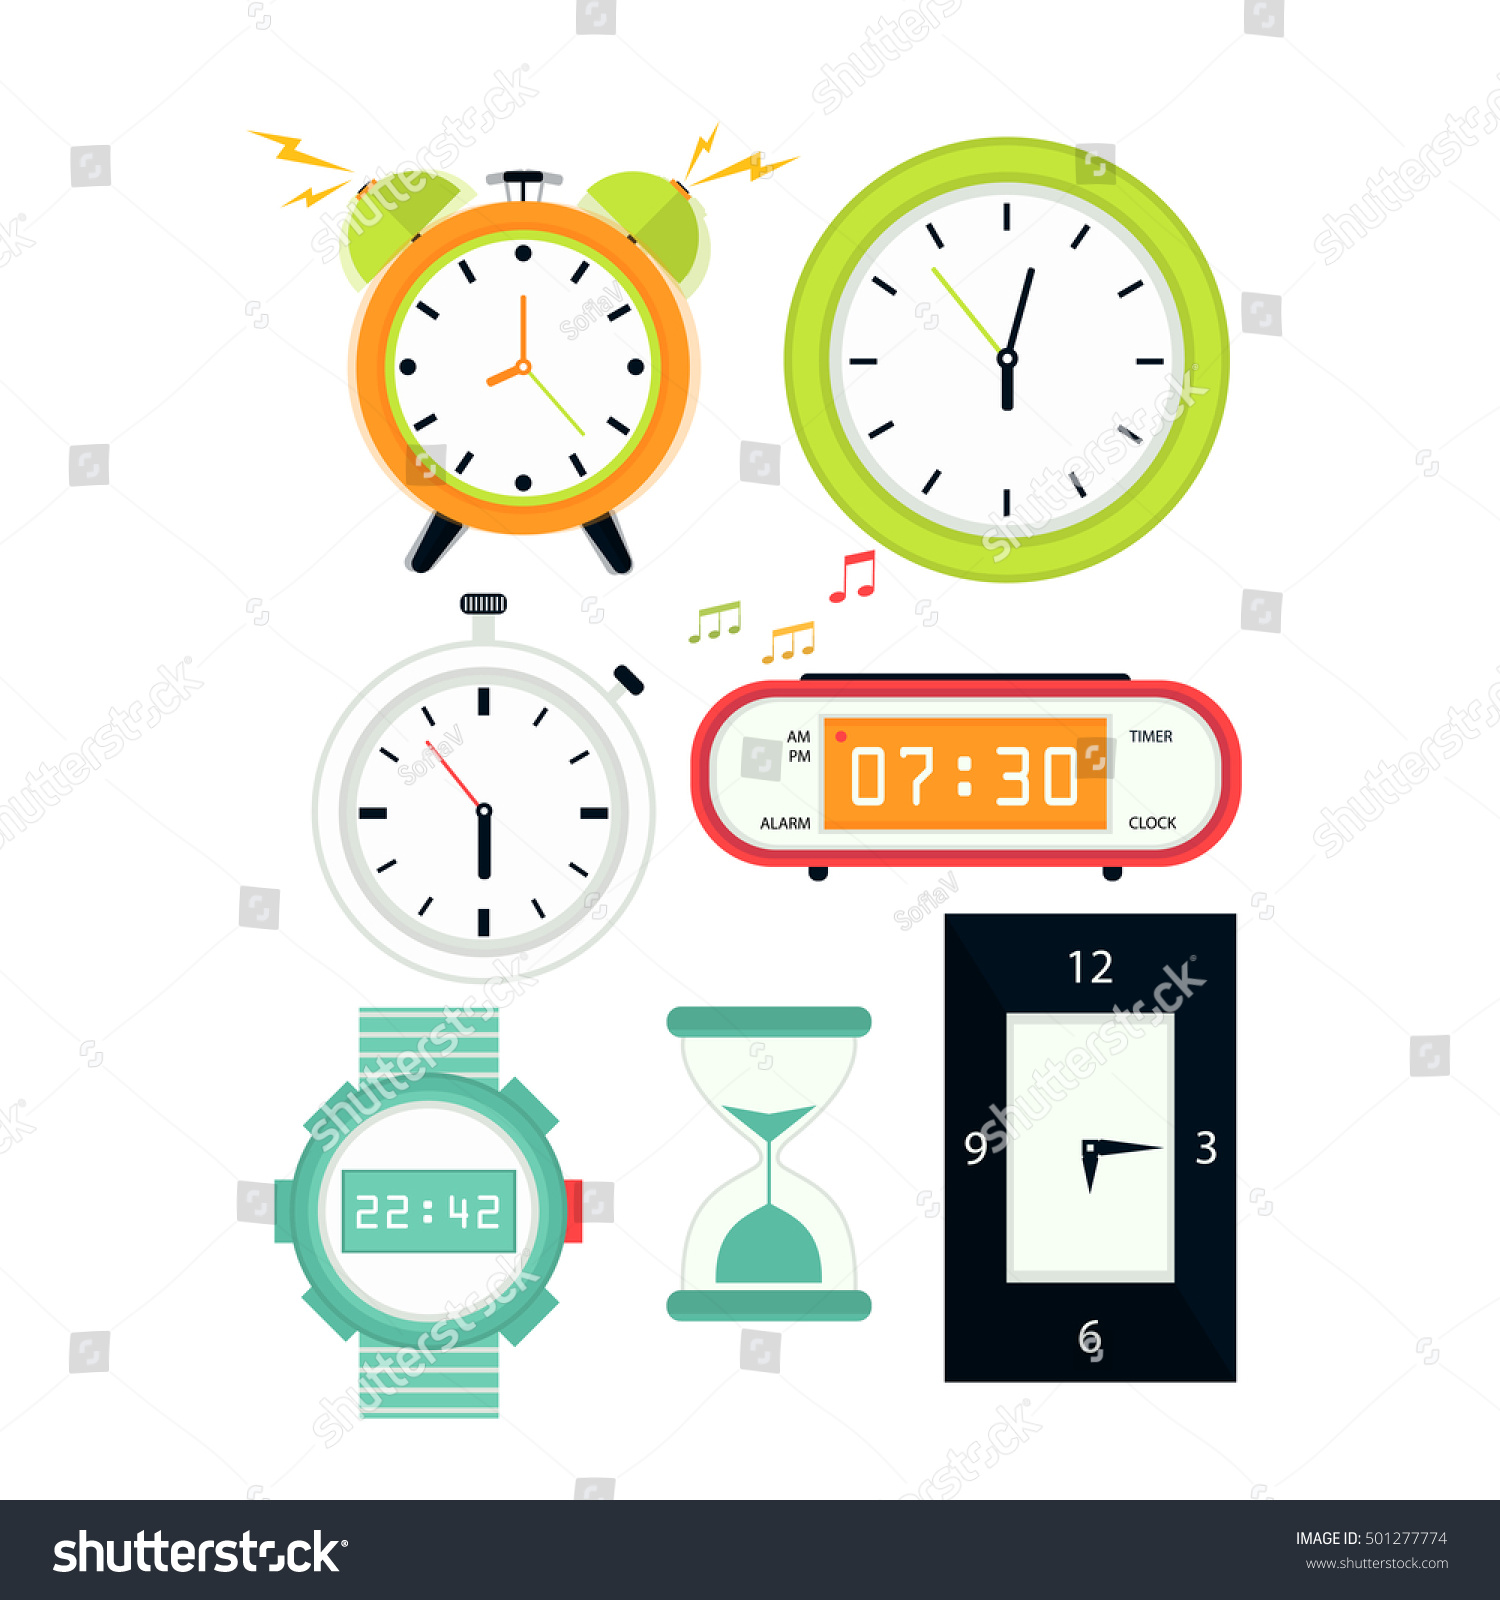 Types alarms clocks digital watch timer stock vector 501277774 types of alarms clocks digital watch and timer stopwatch and hourglass symbol of amipublicfo Choice Image